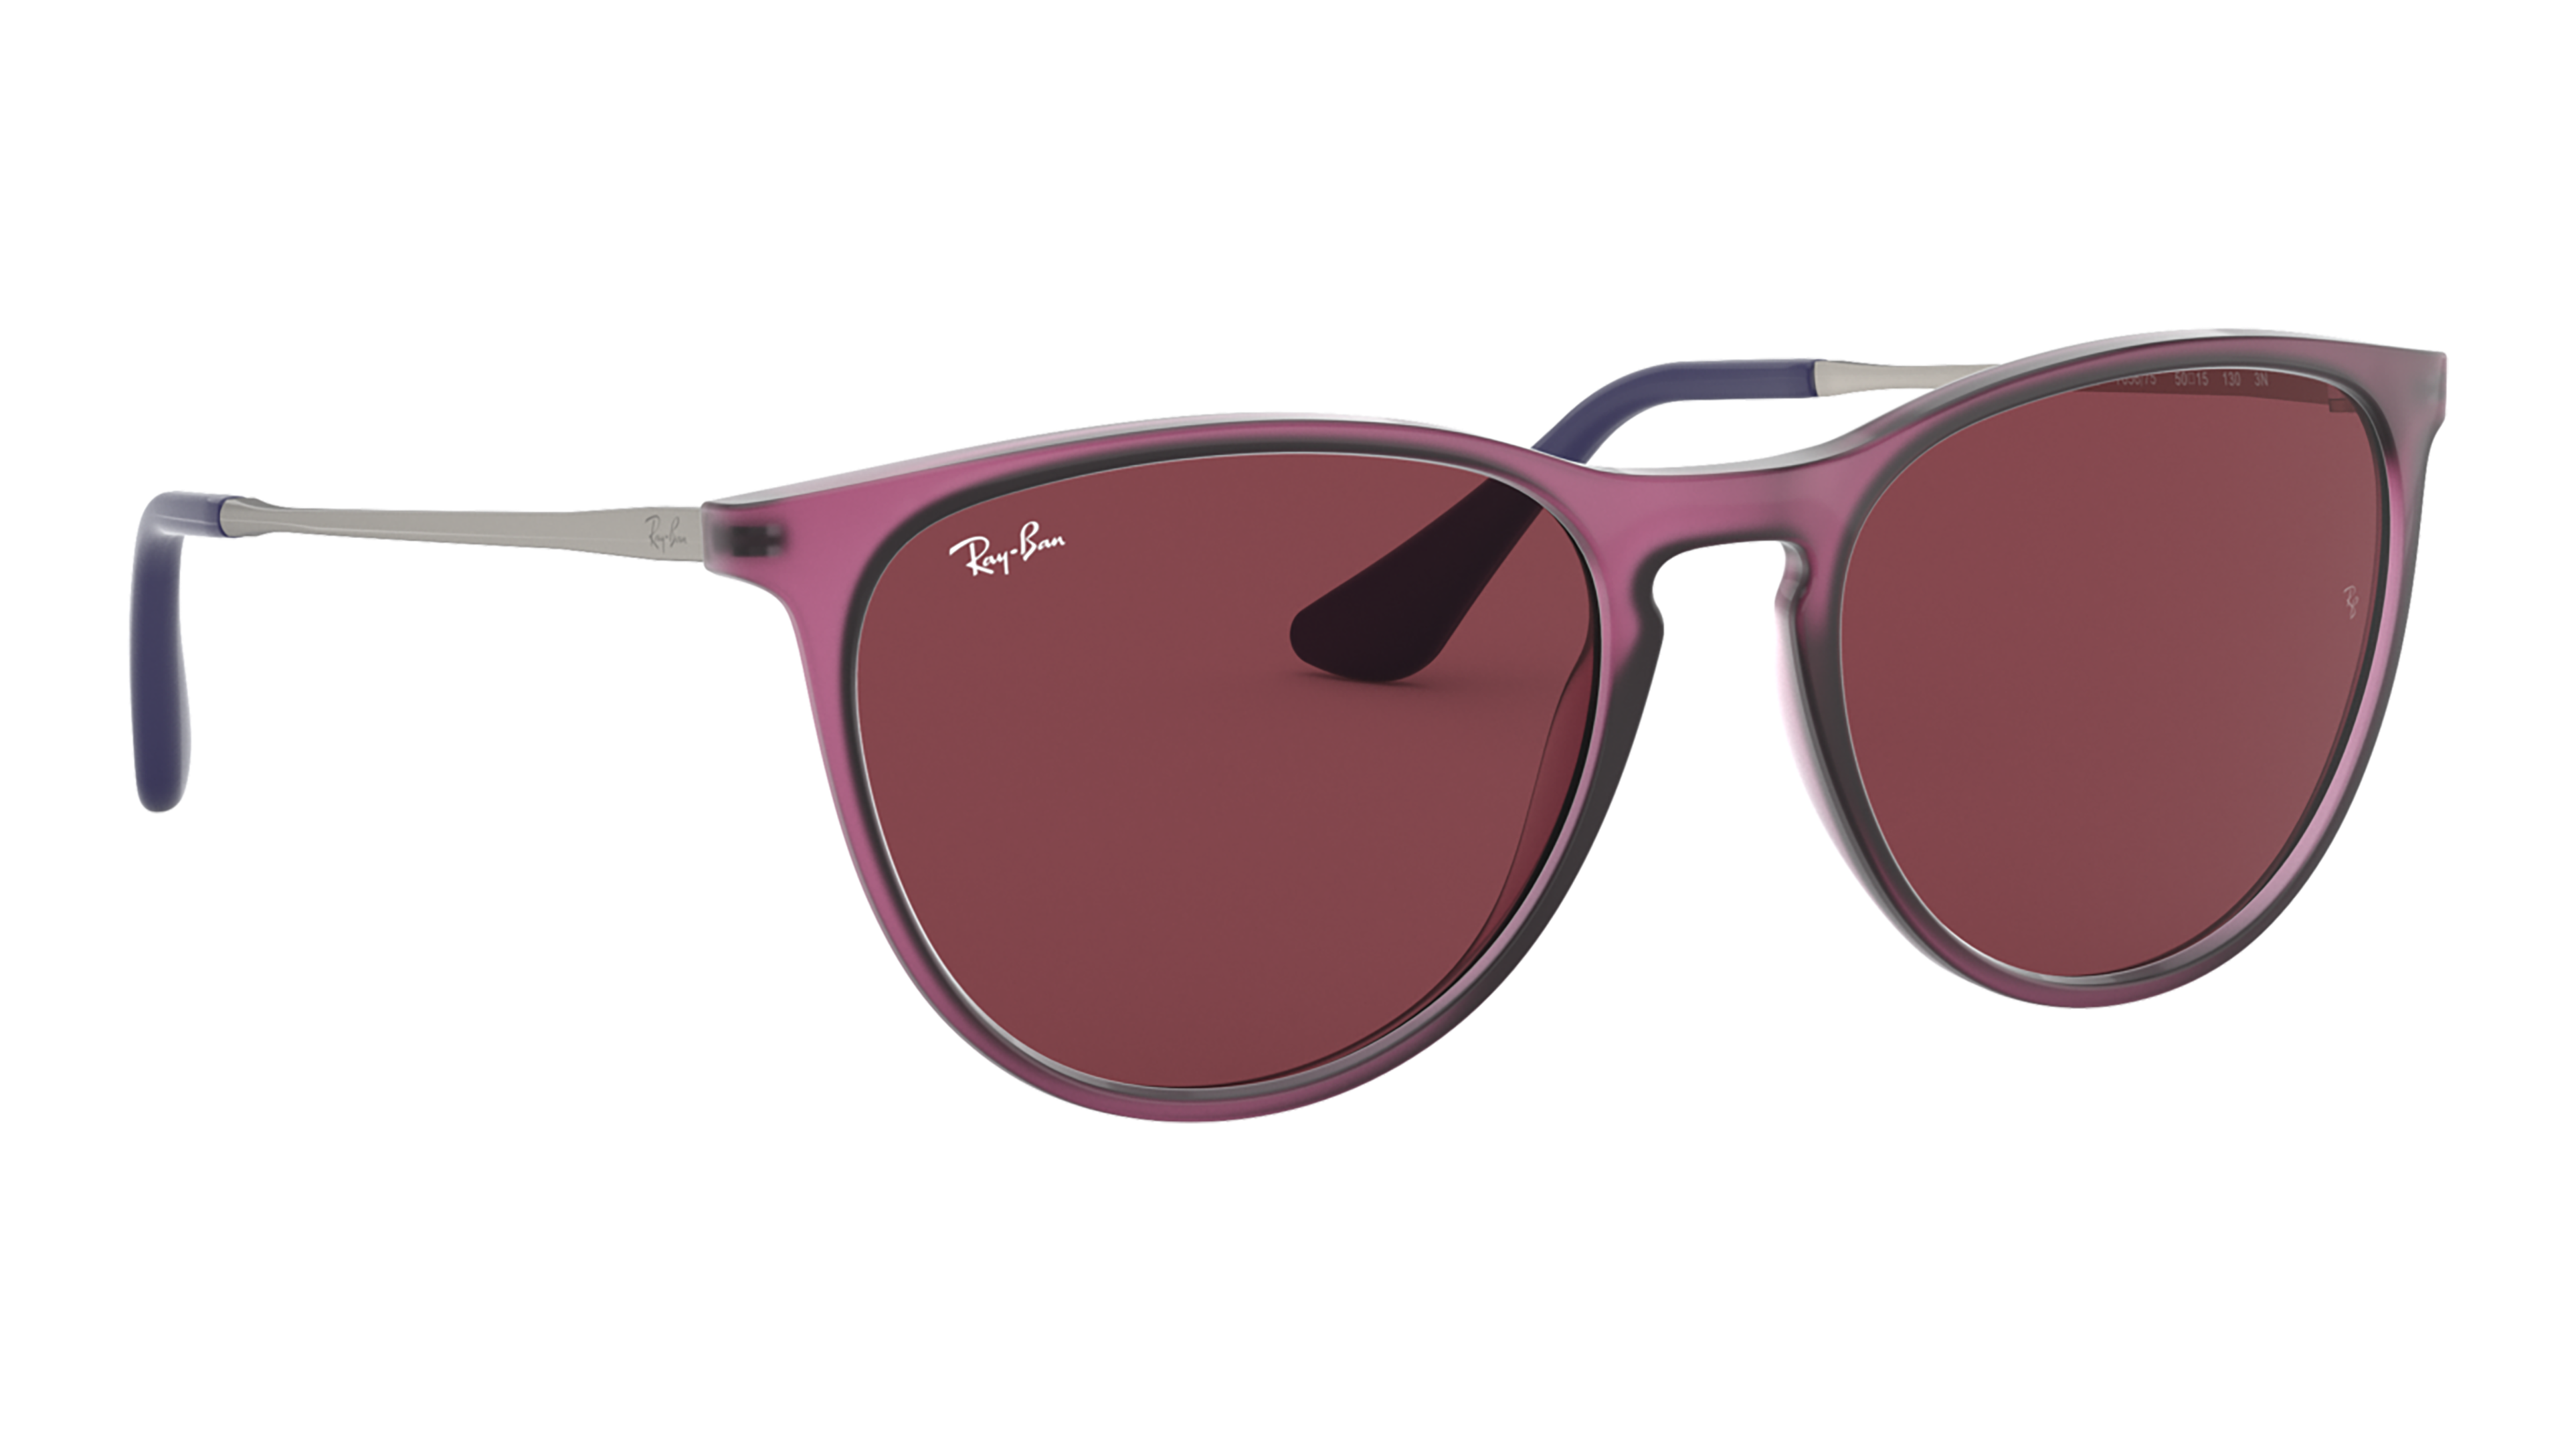 Angle_Right02 Ray-Ban Ray-Ban 0RJ9060S 705675 50/15 Paars/Roze